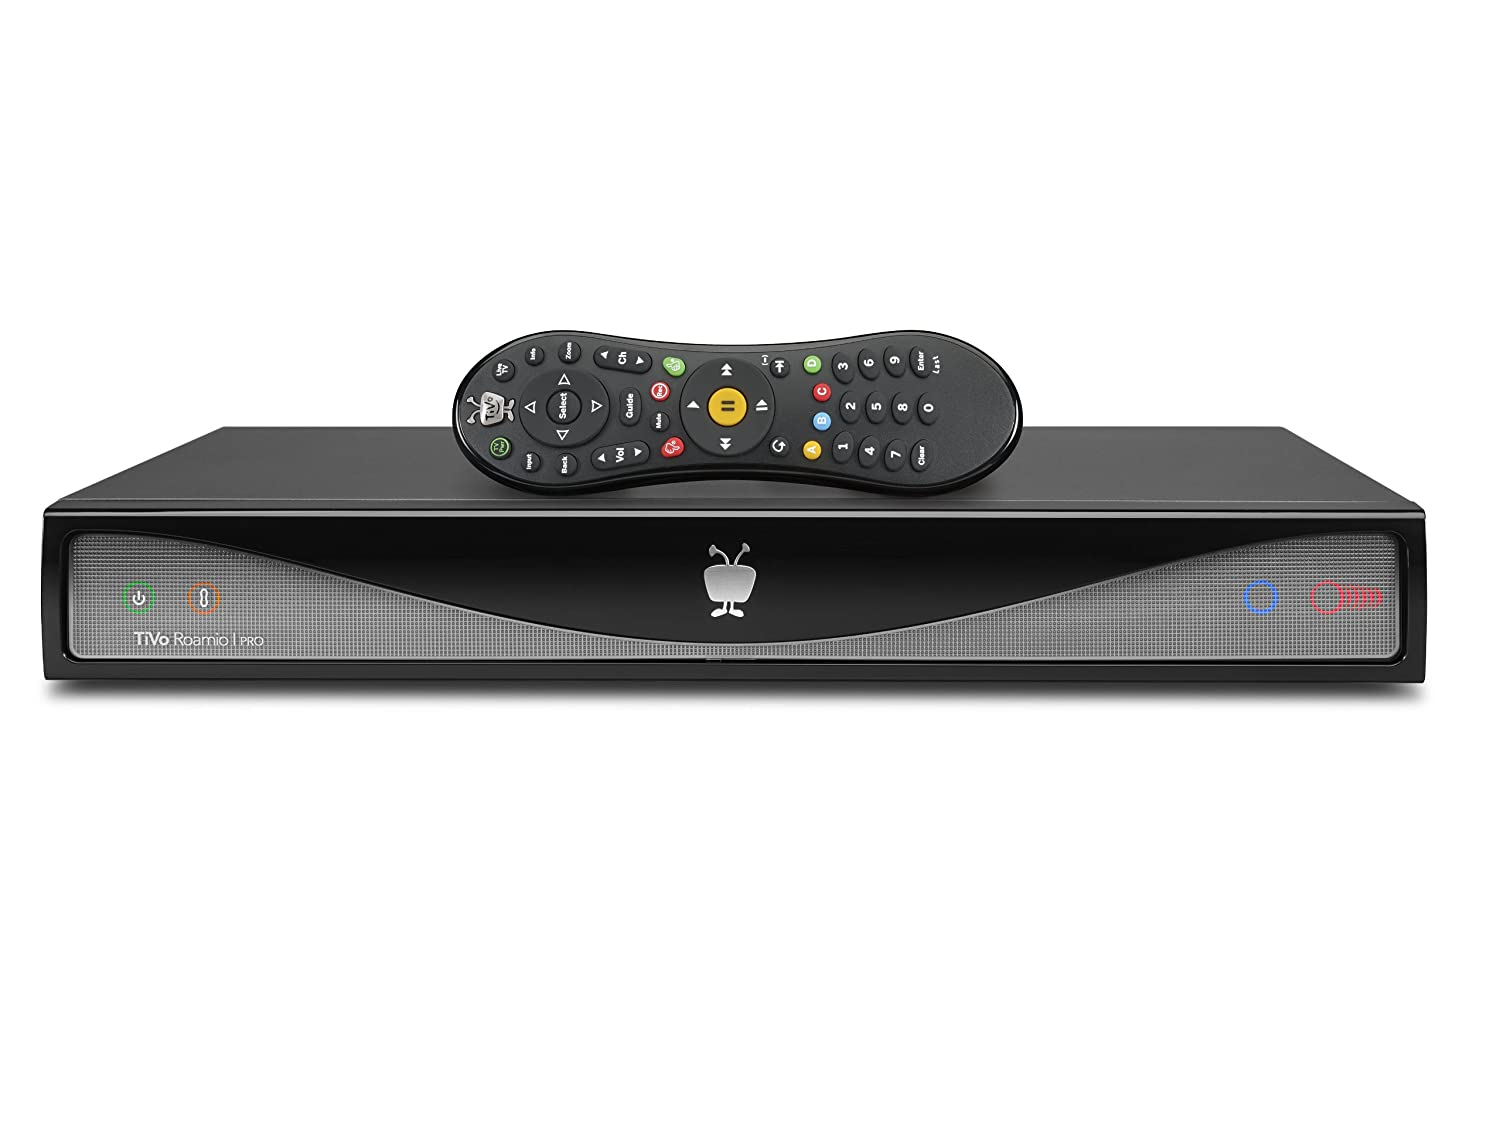 amazon com tivo roamio pro 3 tb dvr old version digital video recorder and streaming media player electronics